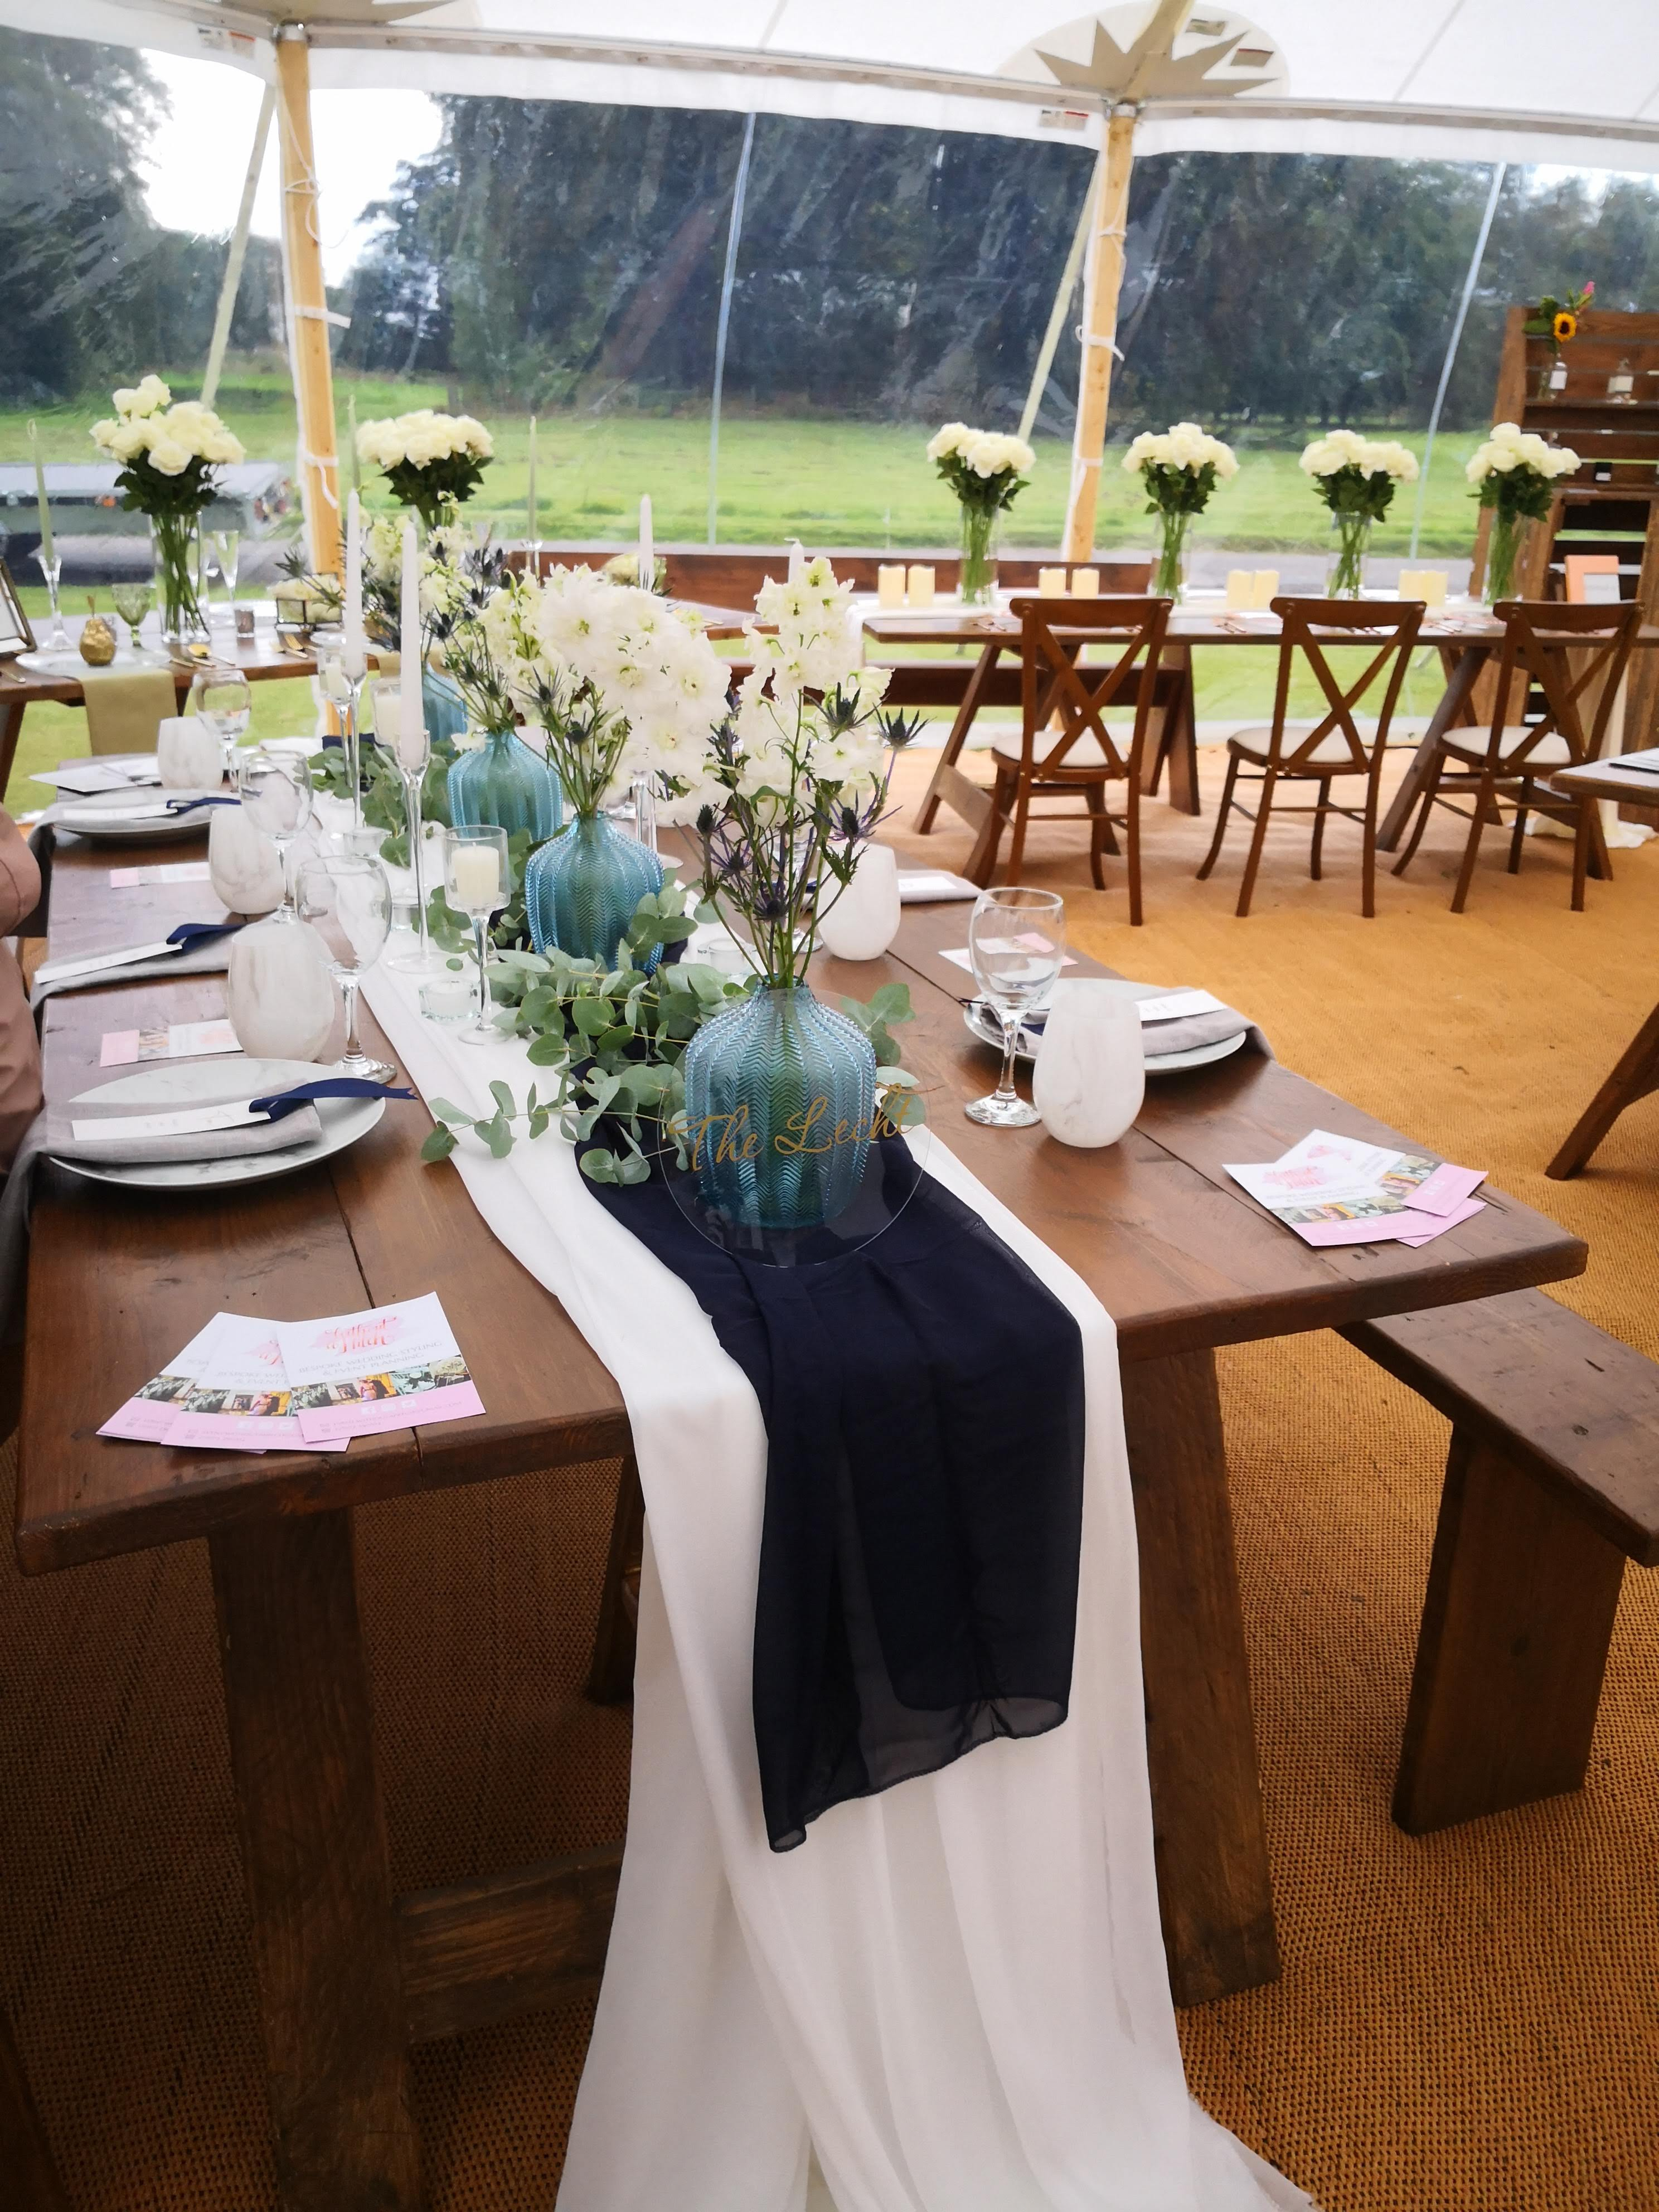 Rustic Look Aberdeen - Tables and Benches.jpg